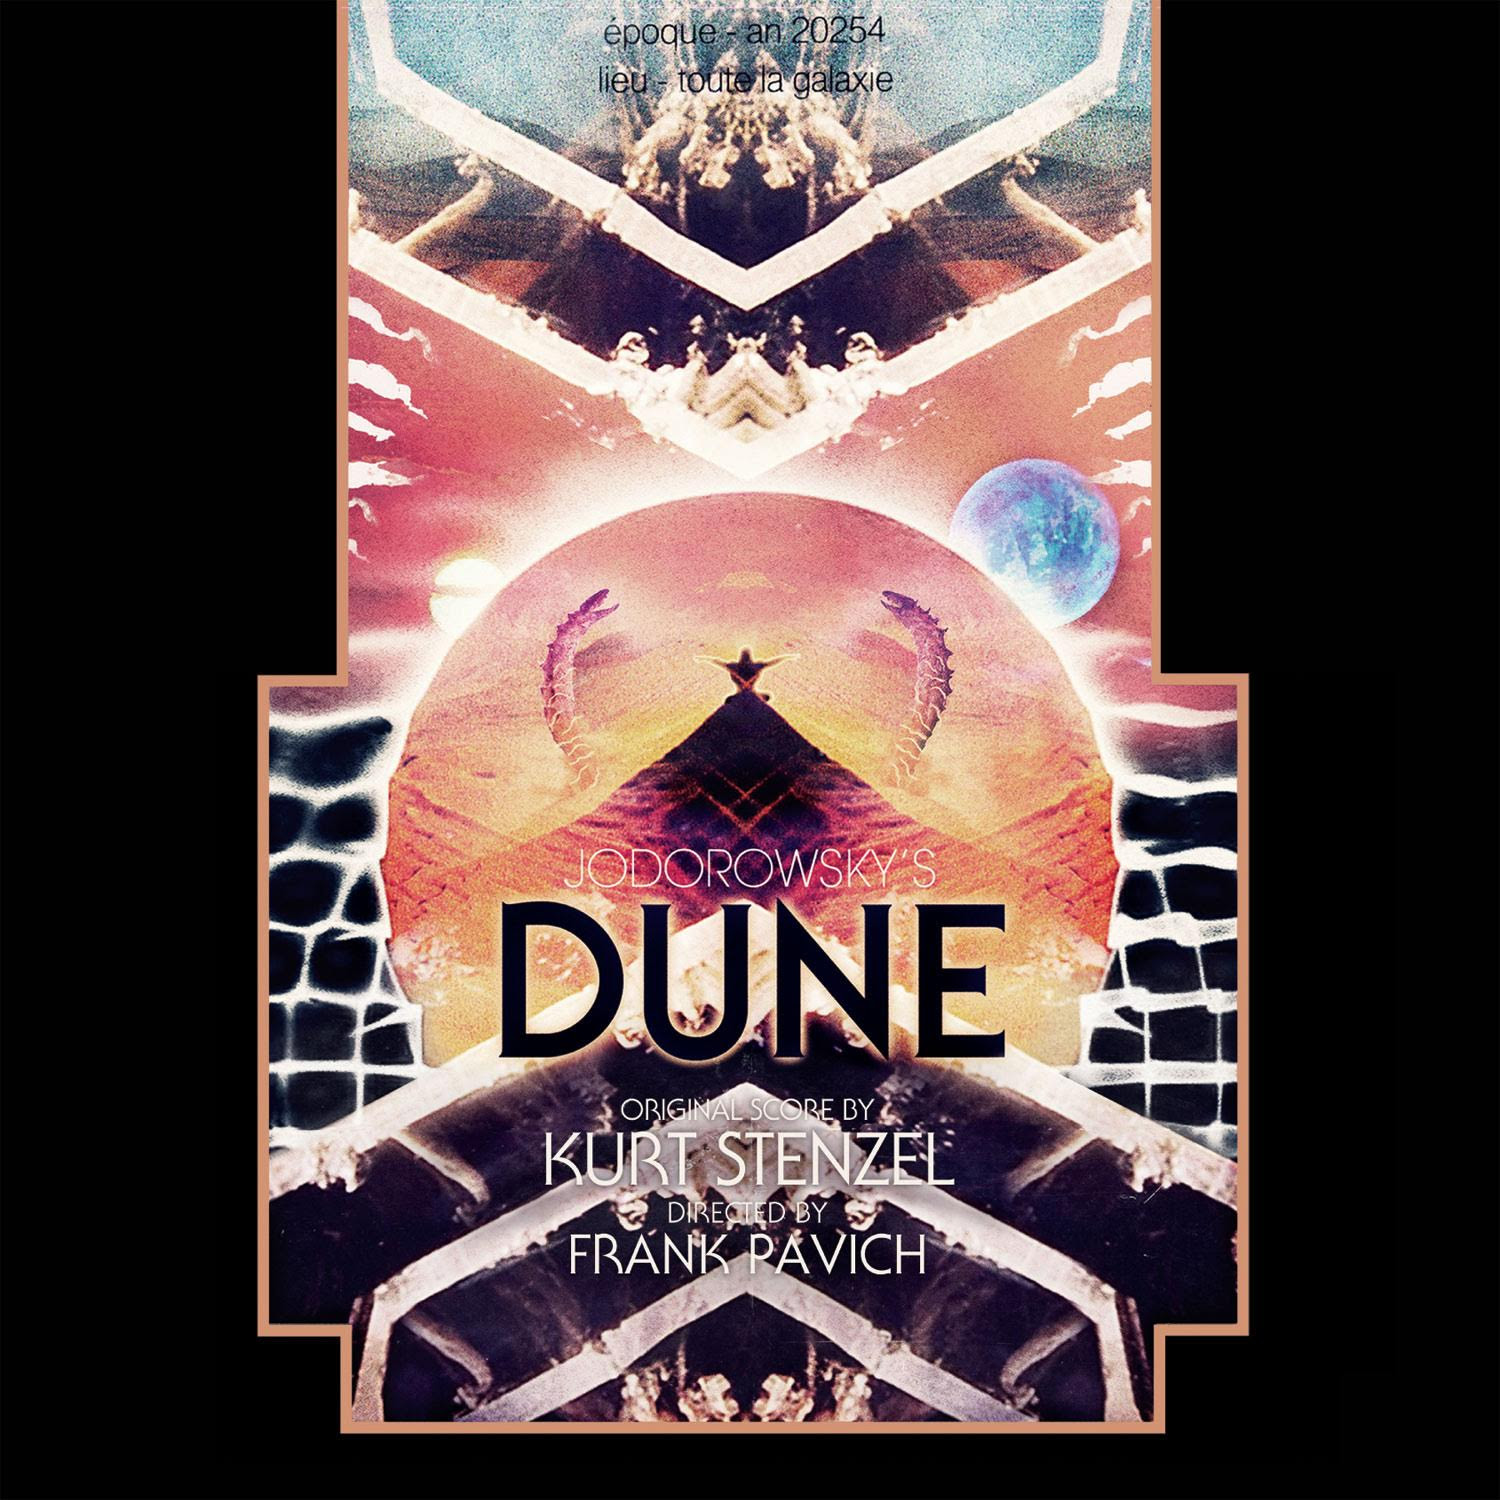 Light In The Attic prep vinyl release of <i>Jodorowsky's Dune</i> soundtrack